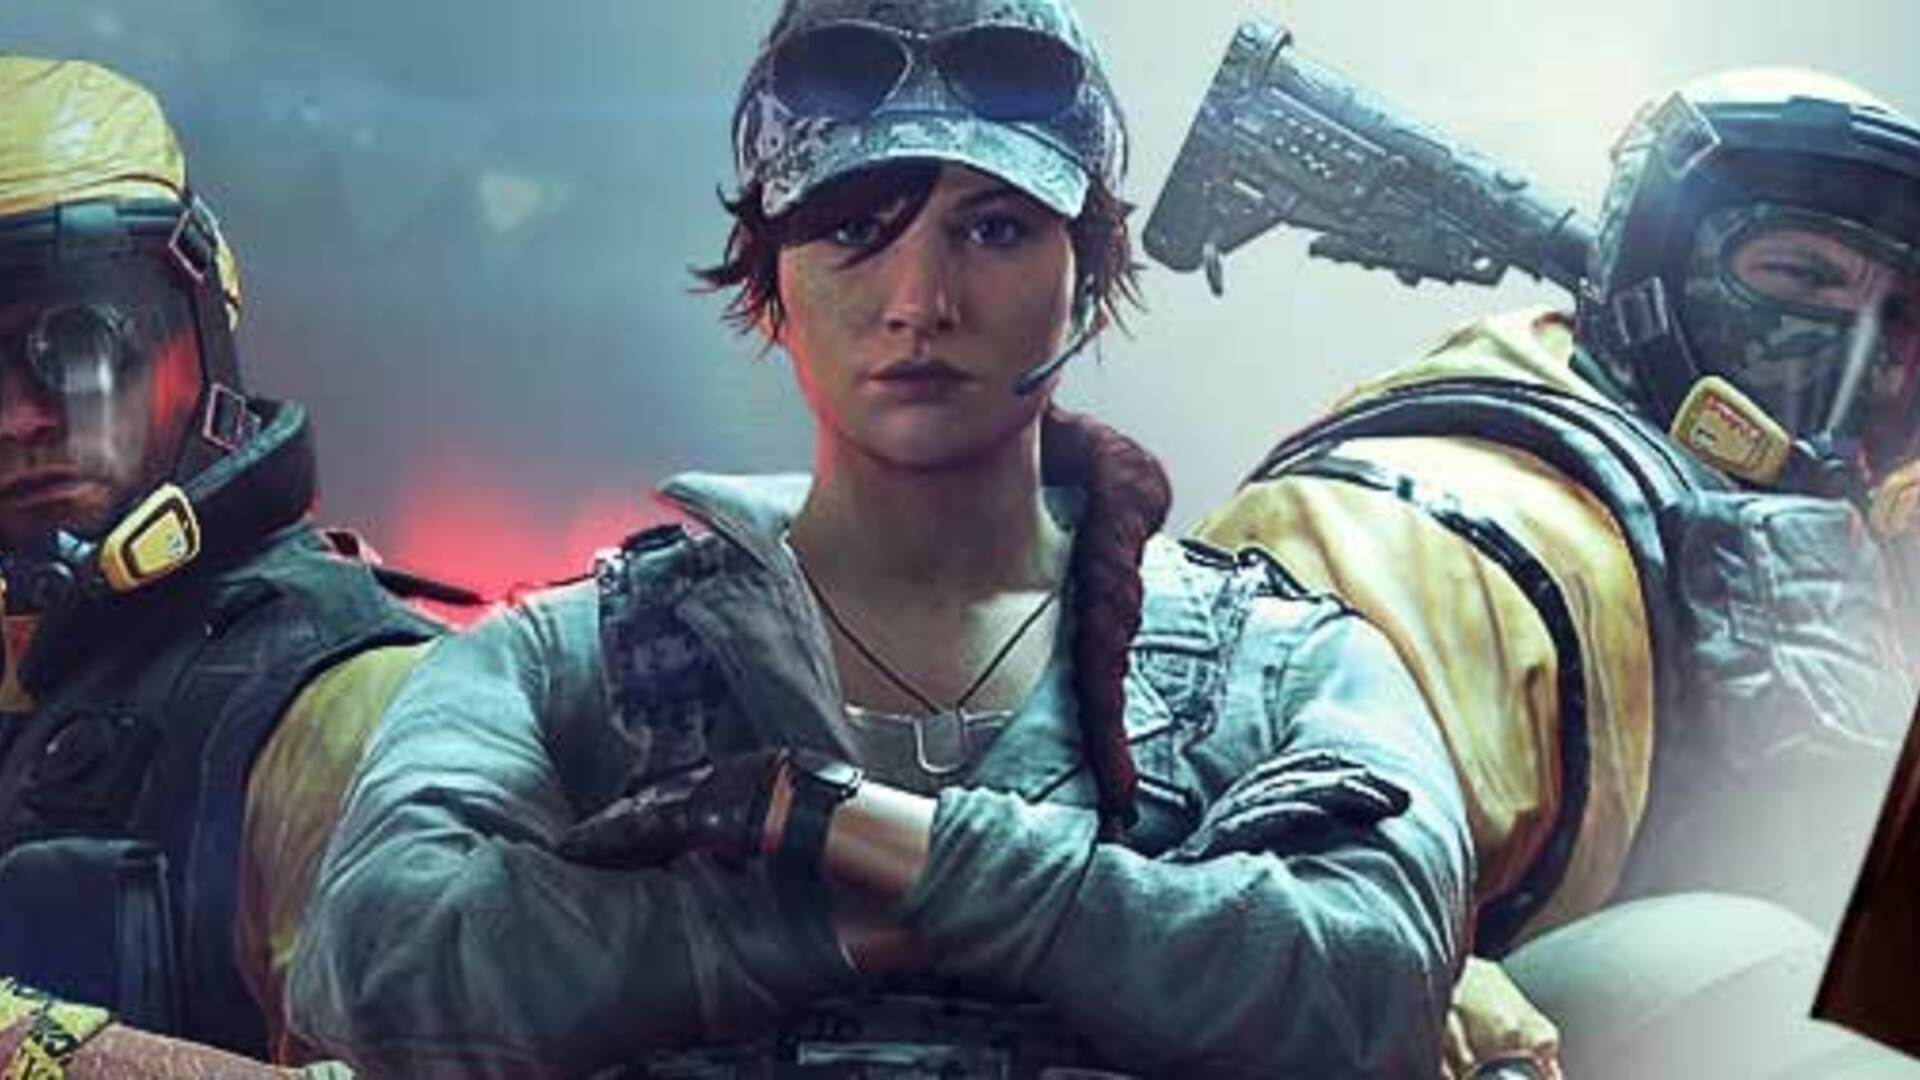 Ubisoft Reports Record First Quarter Thanks to Post-Launch DLC for Games Like Rainbow Six Siege